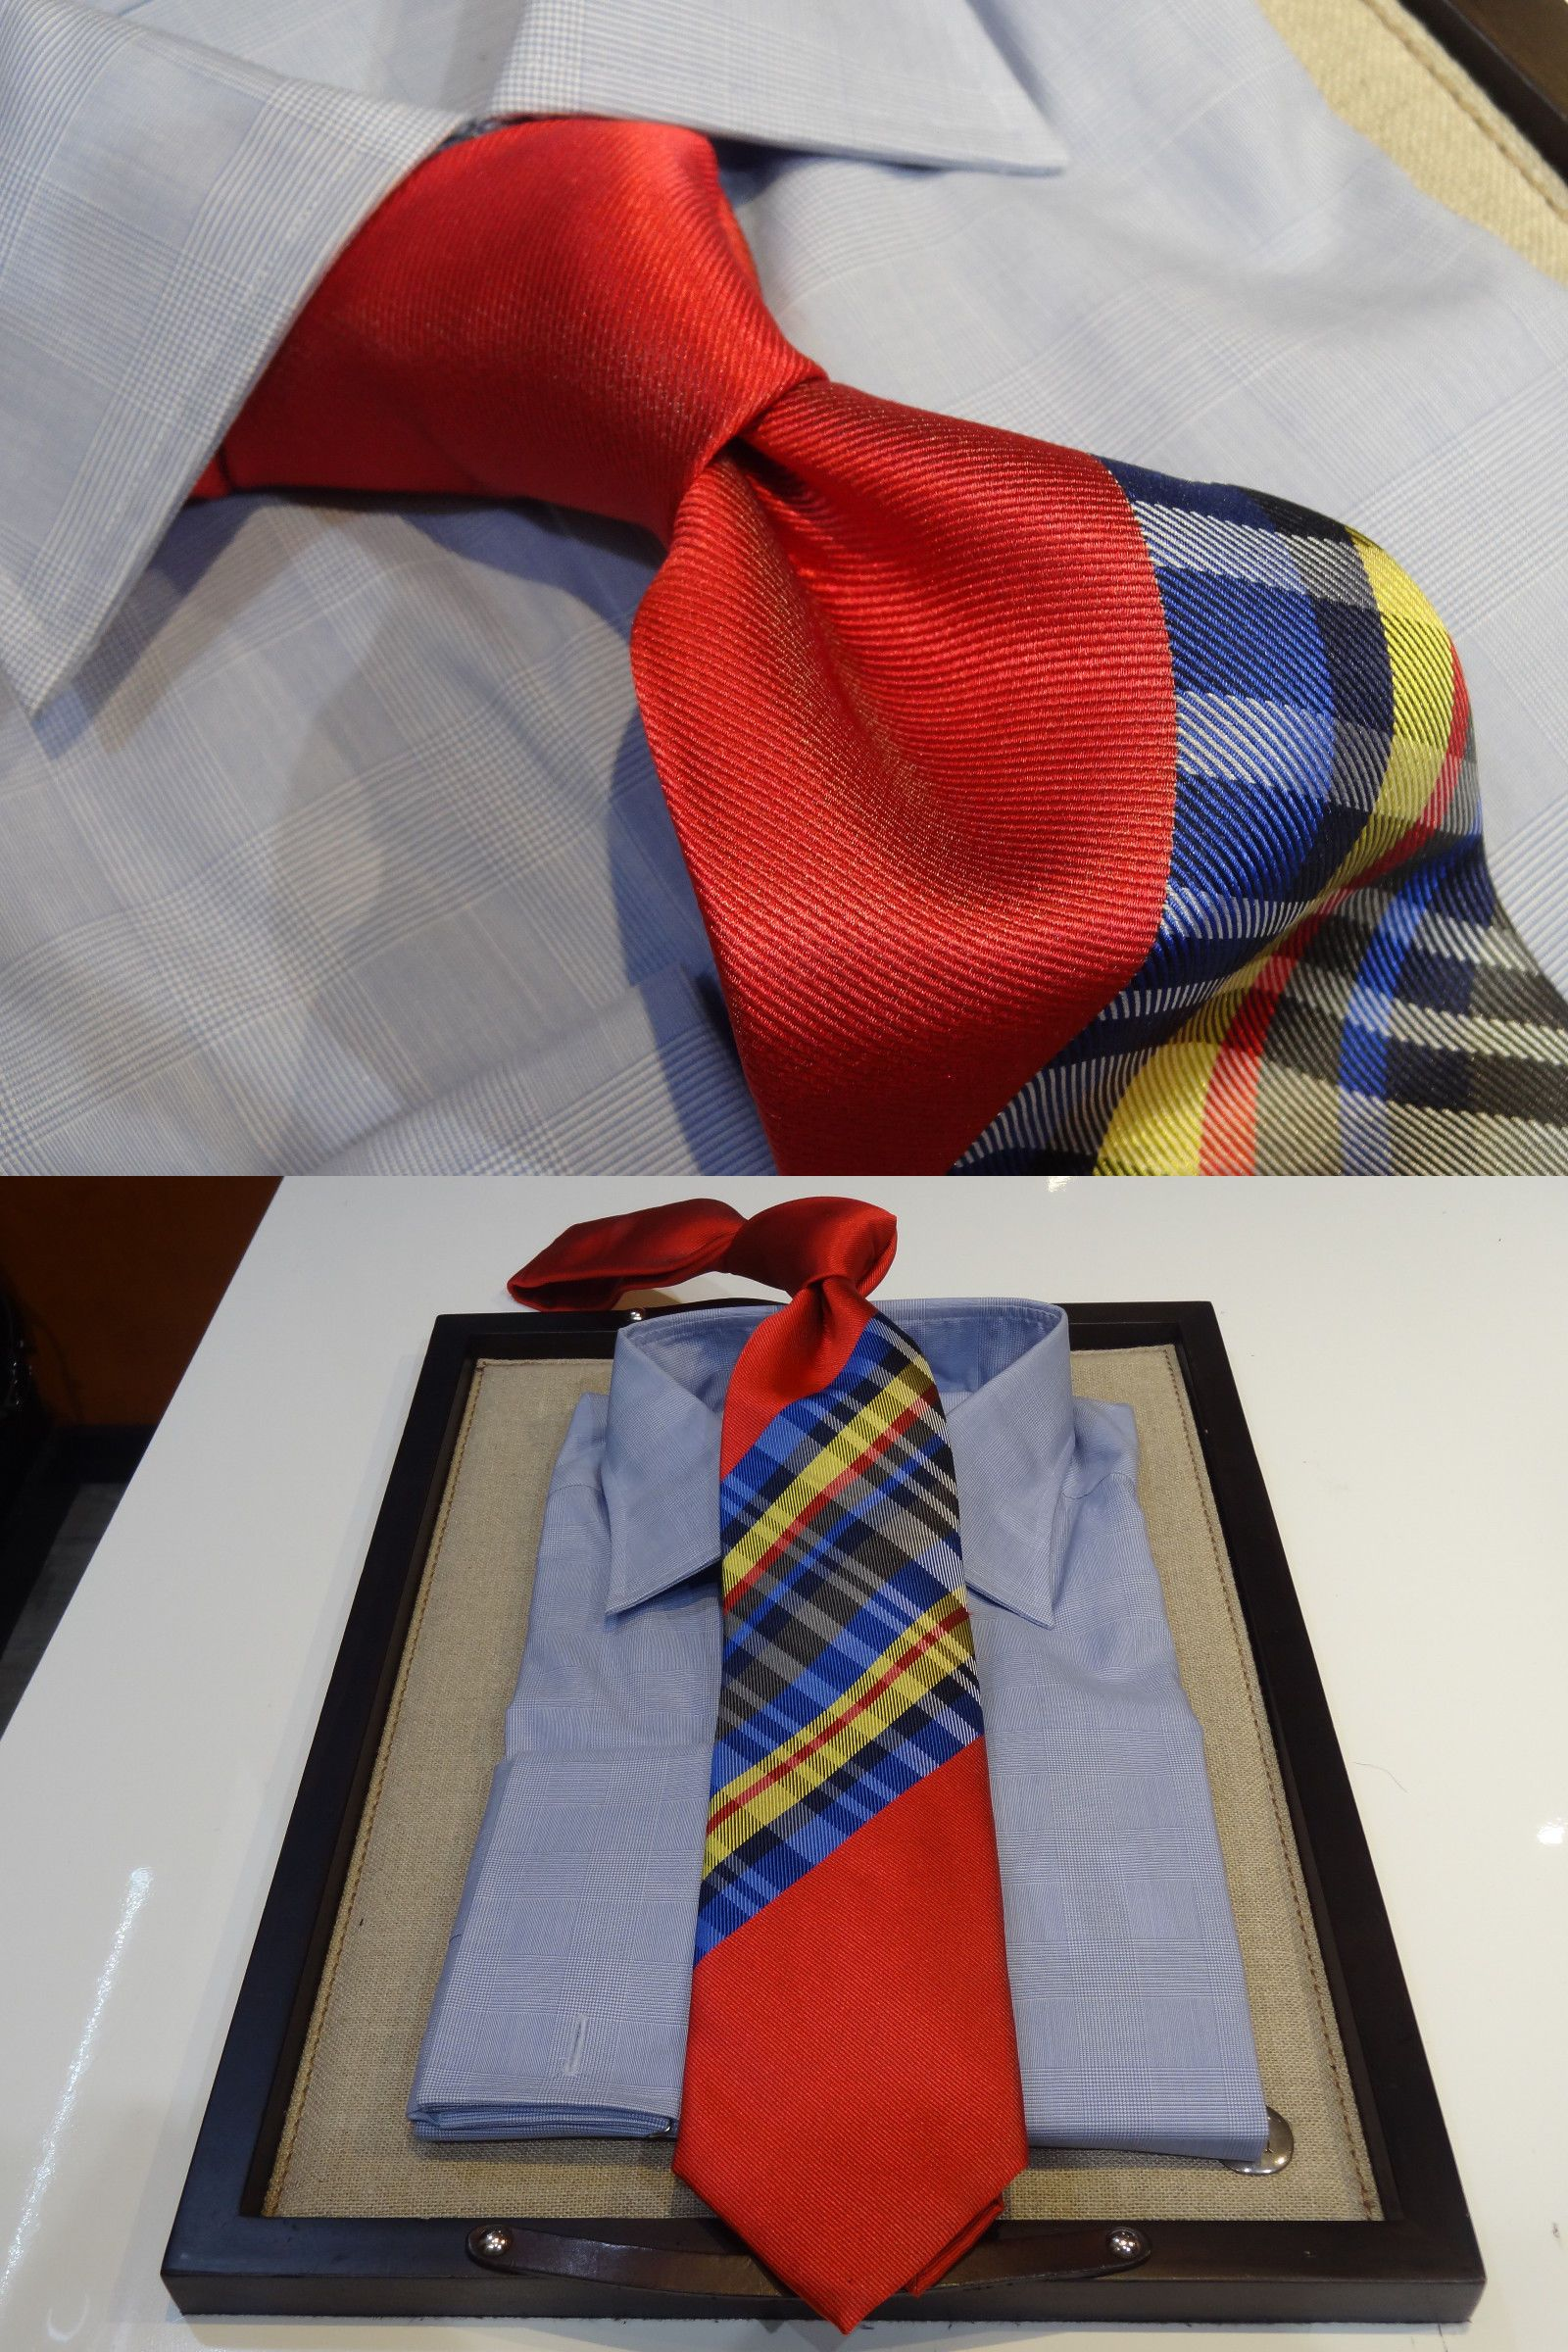 f41ebd6ce036 Ties 15662: Steven Land Big Knot Silk Tie Coral Red Blue Yellow Gray Stripe Check  Plaid -> BUY IT NOW ONLY: $59 on eBay!